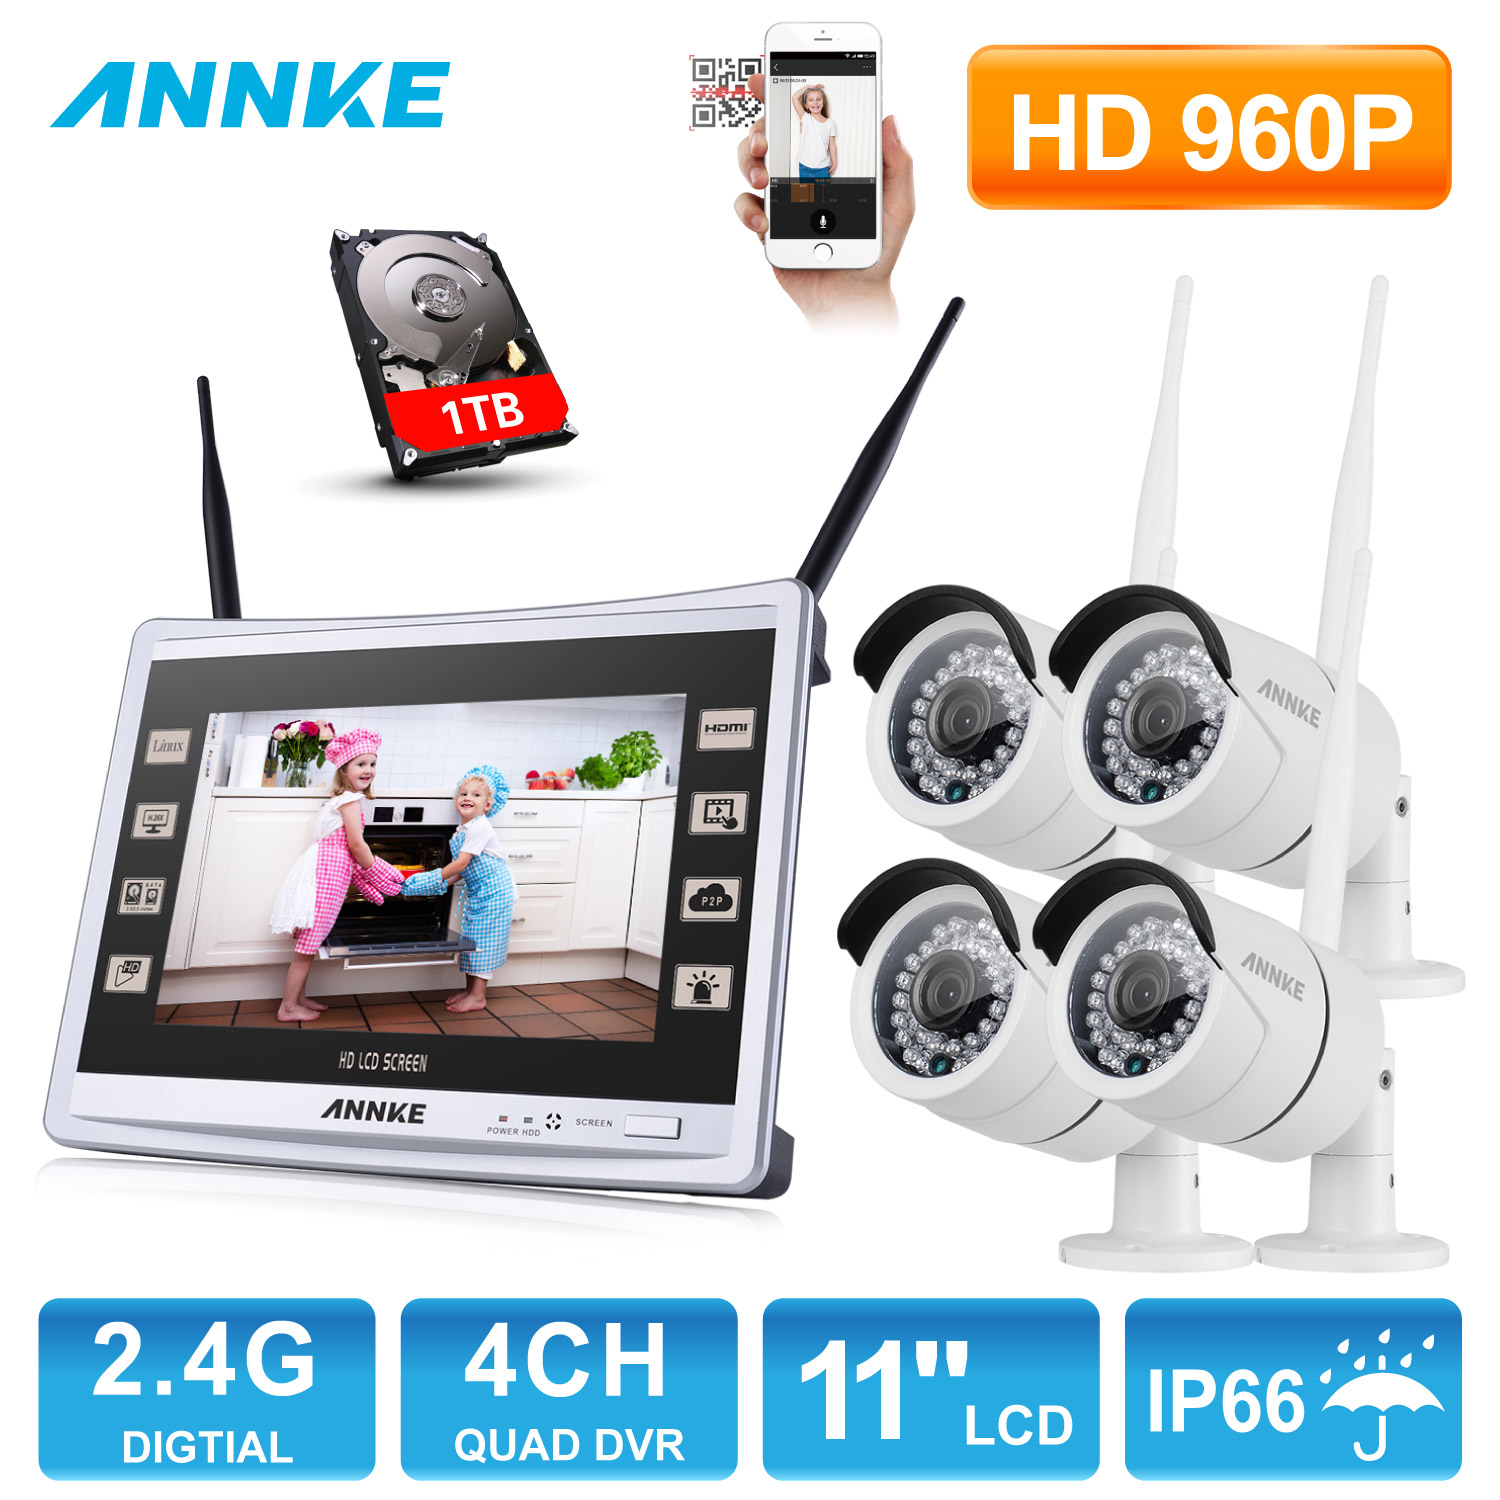 ANNKE 4CH 960P Wireless 11 Monitor NVR Outdoor IR Night Vision Video Surveillance Security 4pcs WIFI IP Camera CCTV System annke 4ch 960p hd outdoor ir night vision video surveillance security 4pcs ip camera wifi cctv system wireless nvr kit 1tb hdd